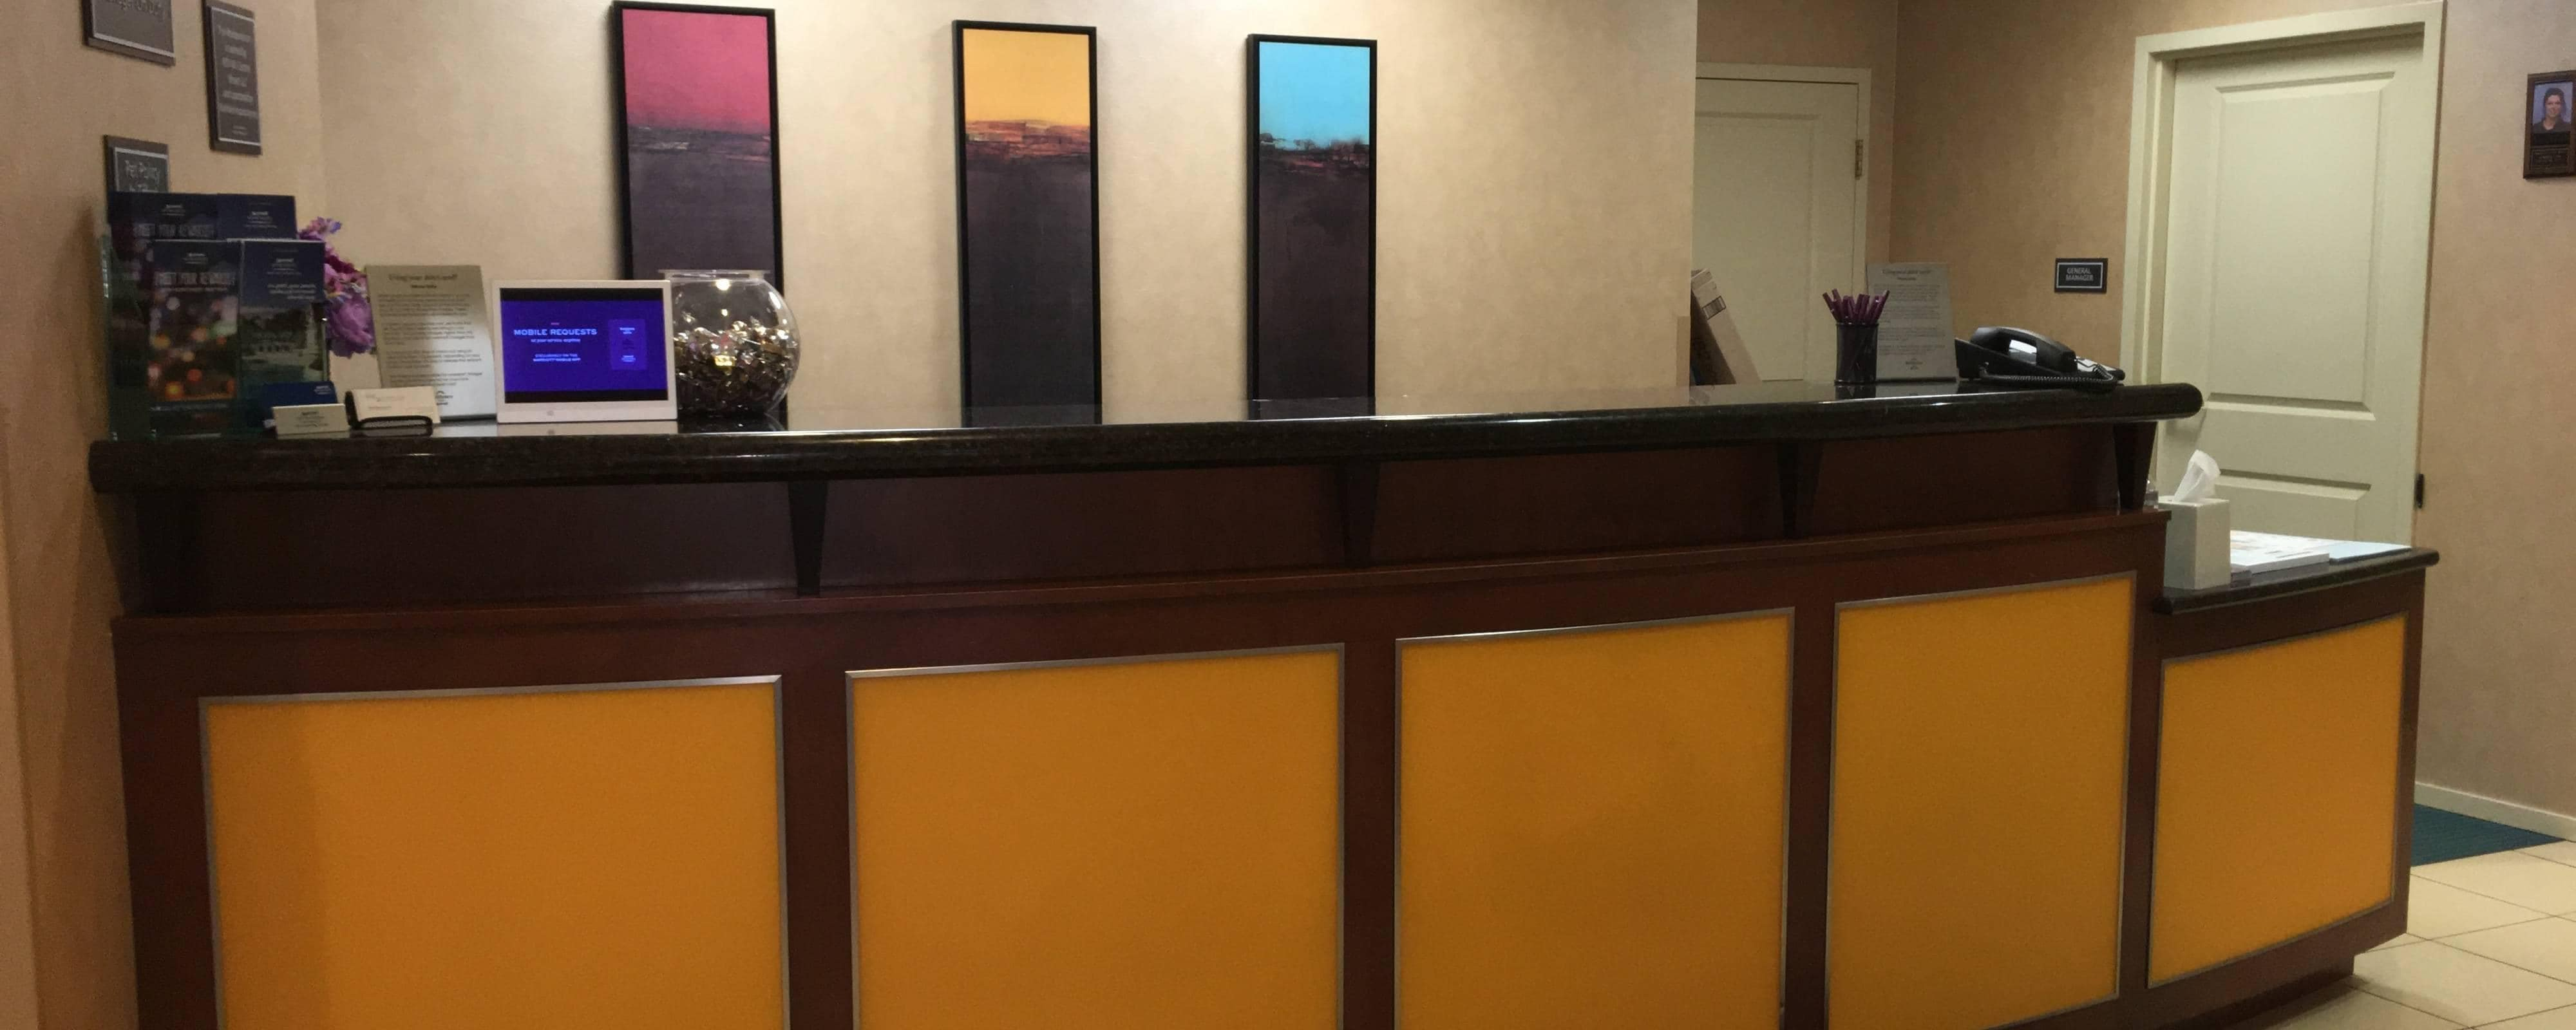 Downtown Rochester MN Hotels | Residence Inn Rochester Mayo Clinic